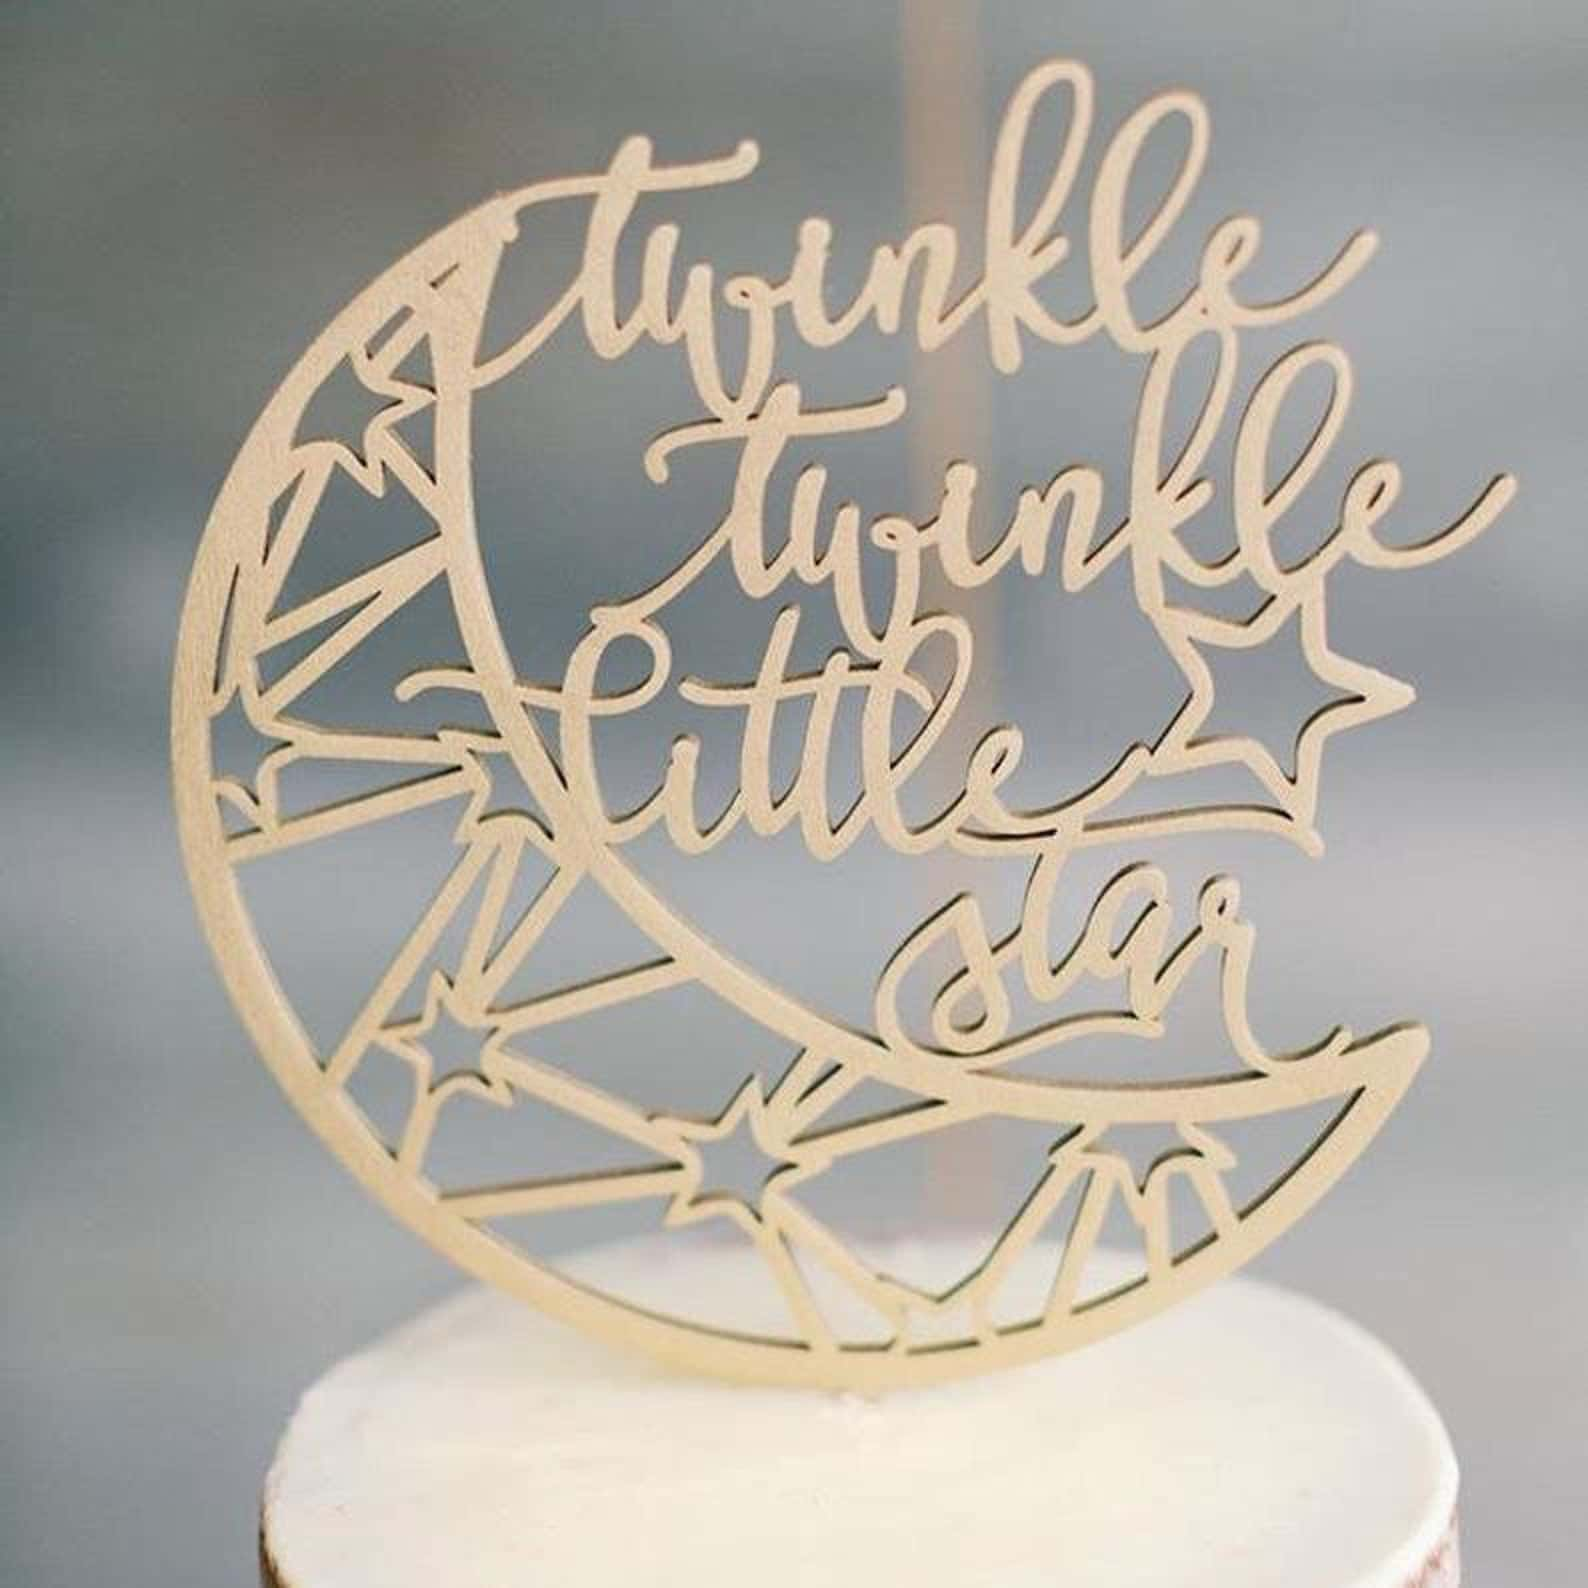 Twinkle Twinkle Little Star Cake Topper by Thistle and Lace